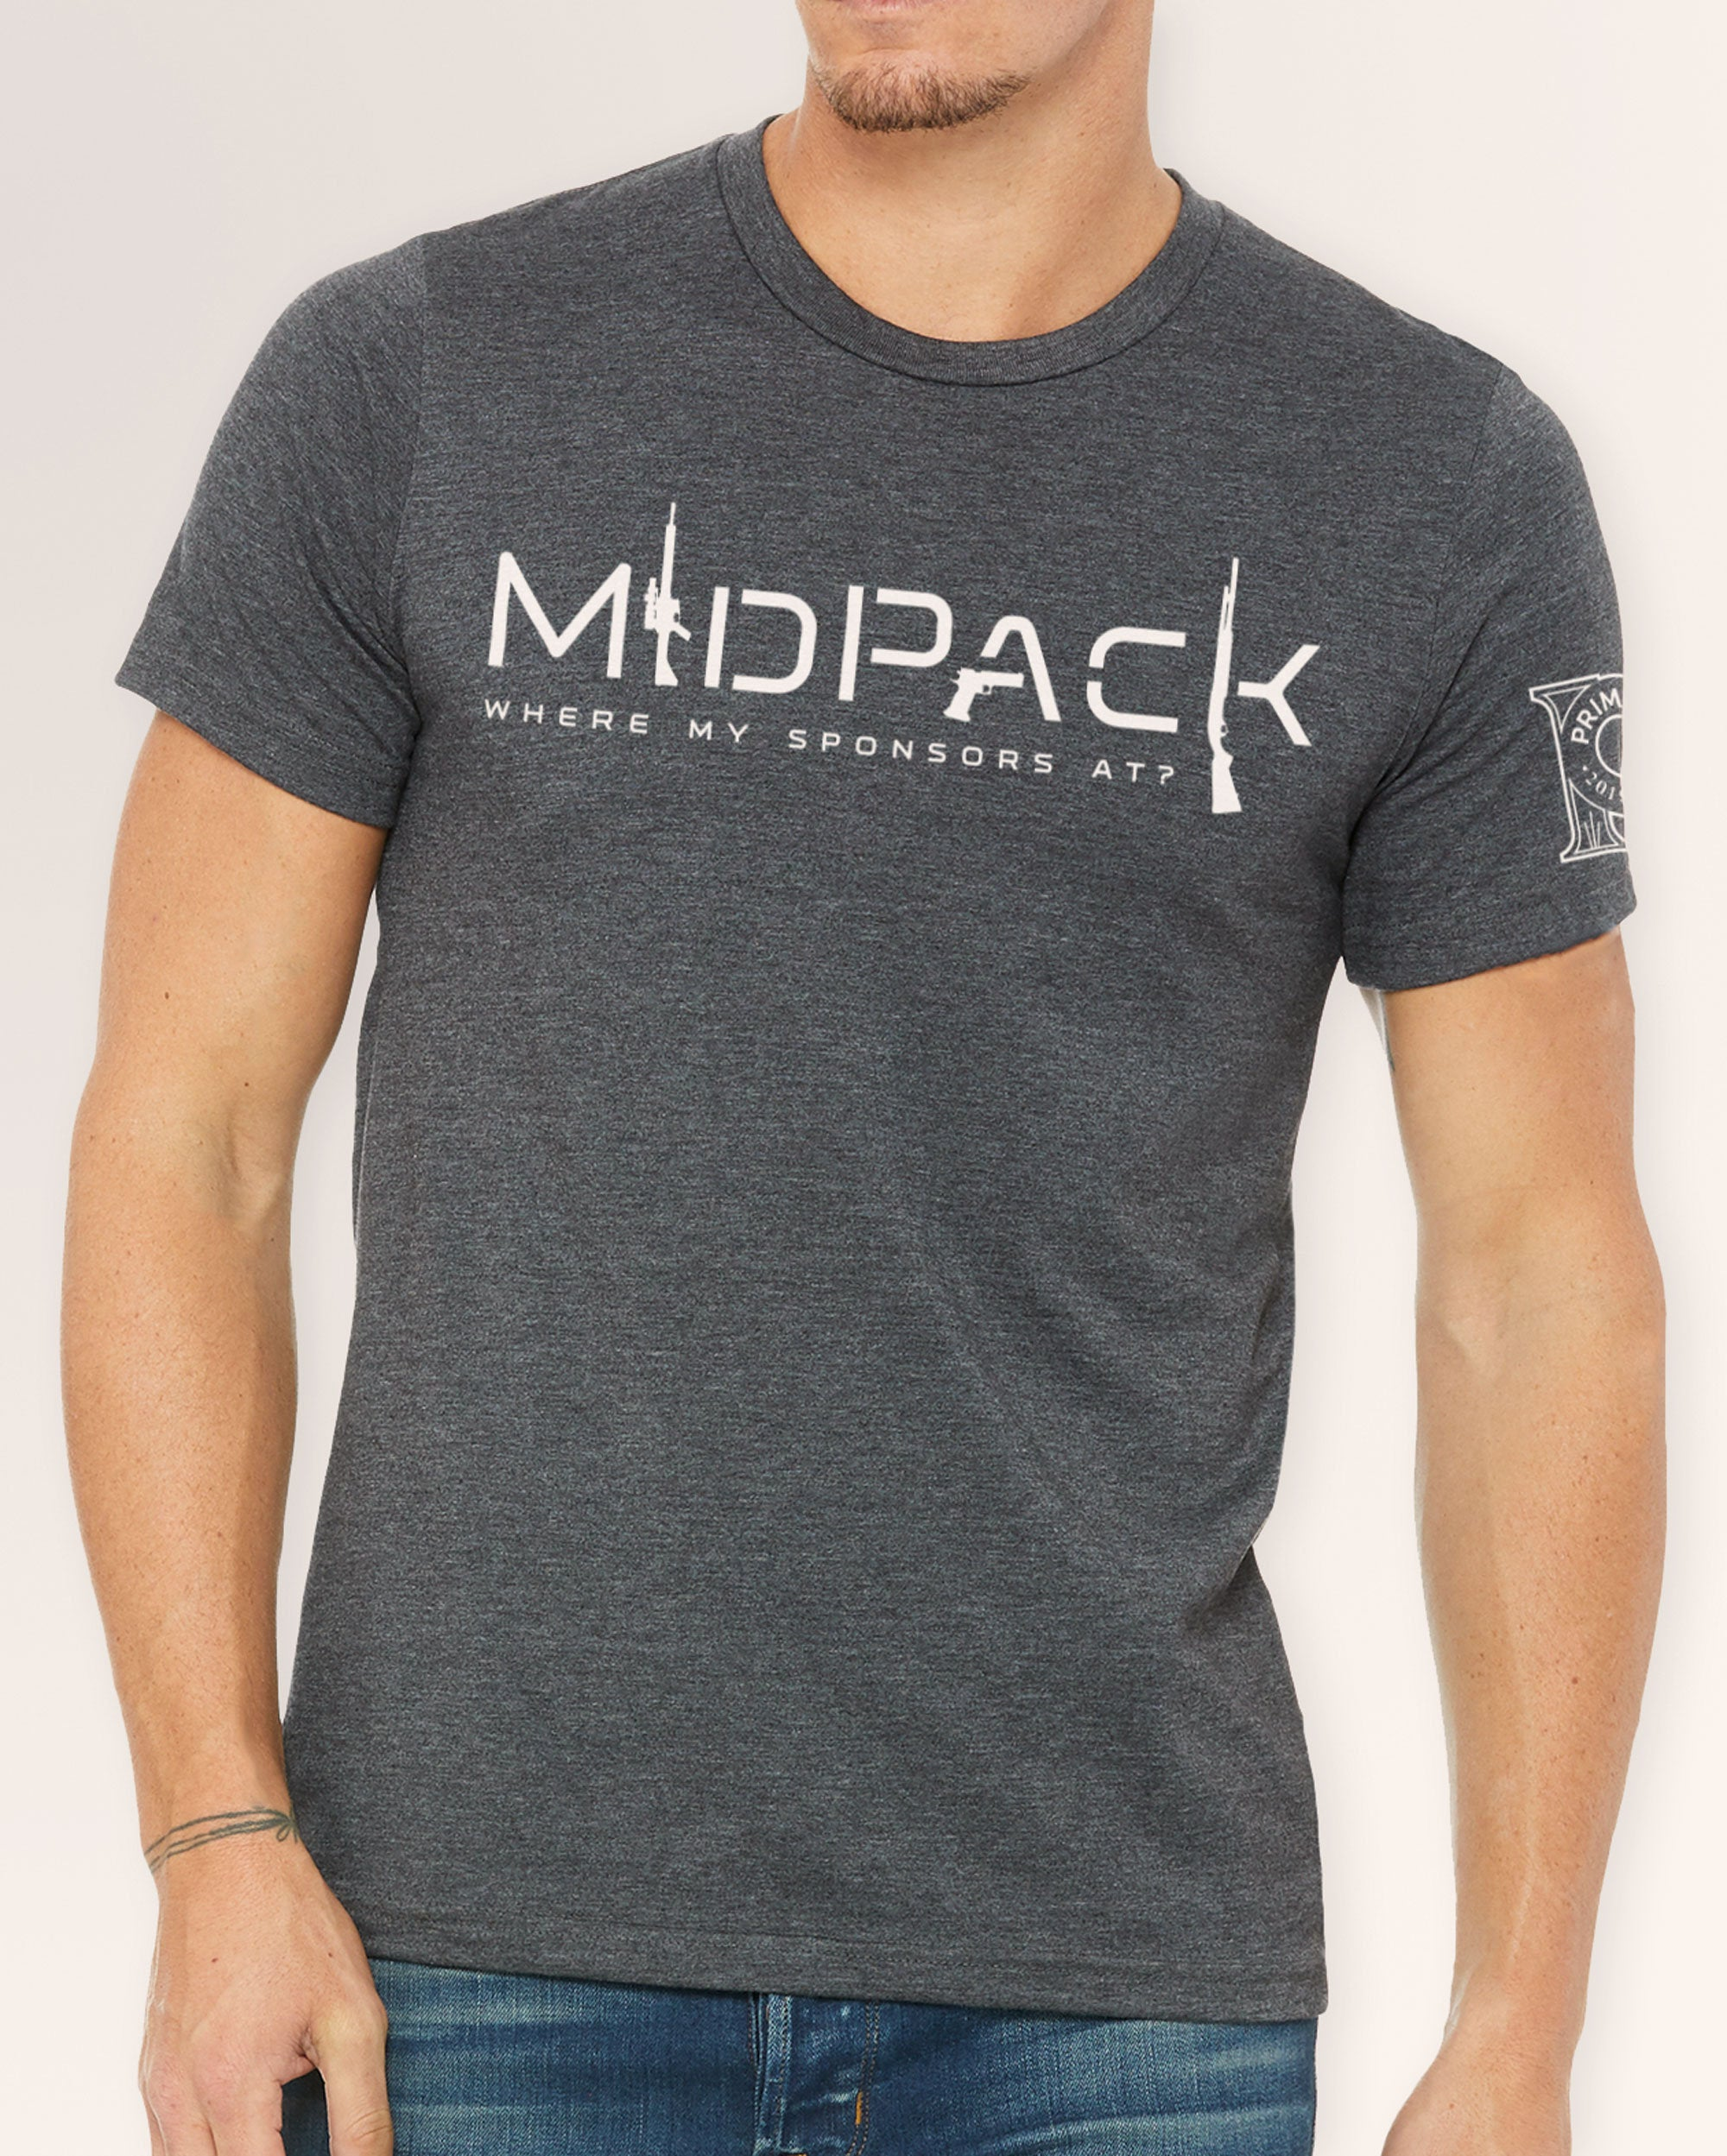 Men's Crew Neck Tee - Mid Pack Where My Sponsors At?